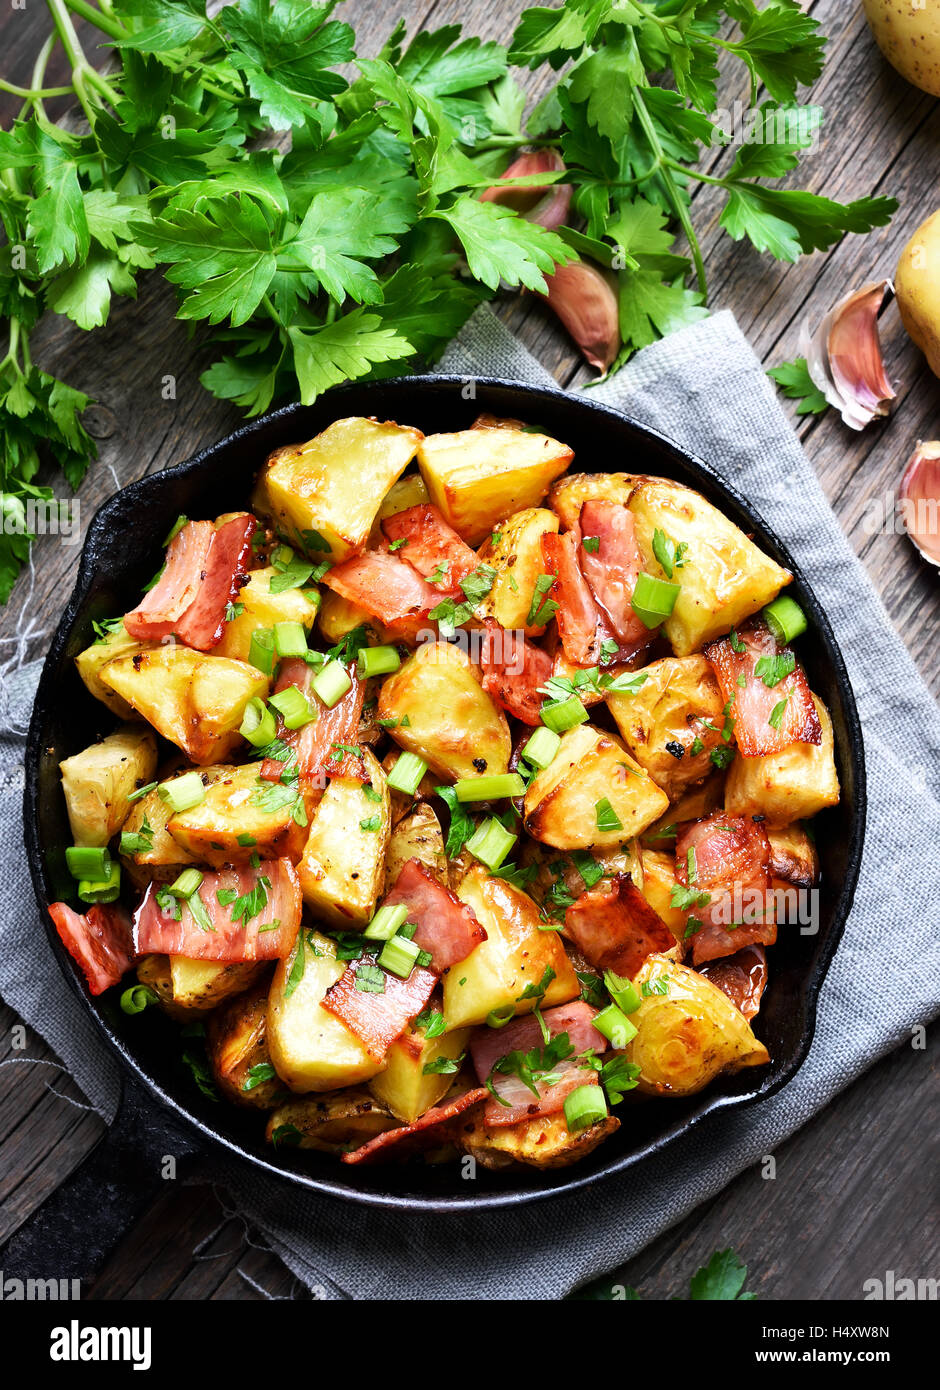 Potatoes baked with bacon and onion, top view - Stock Image